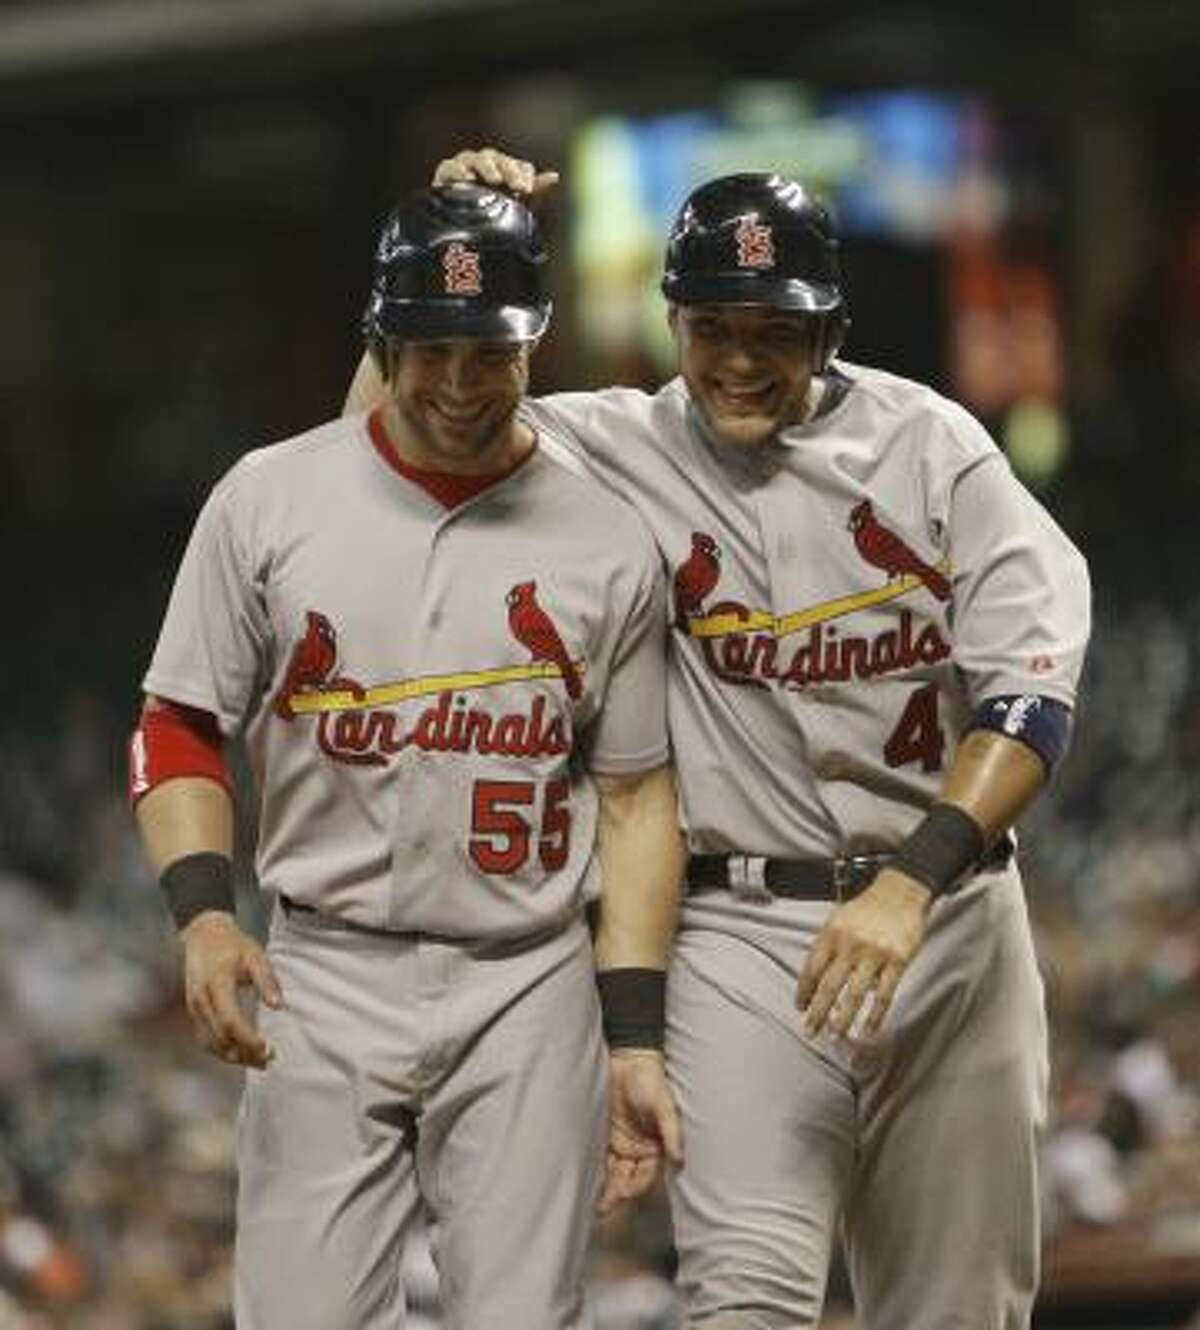 Yadier Molina pats Skip Schumaker on the head after they scored on a double by pitcher Jake Westbrook.